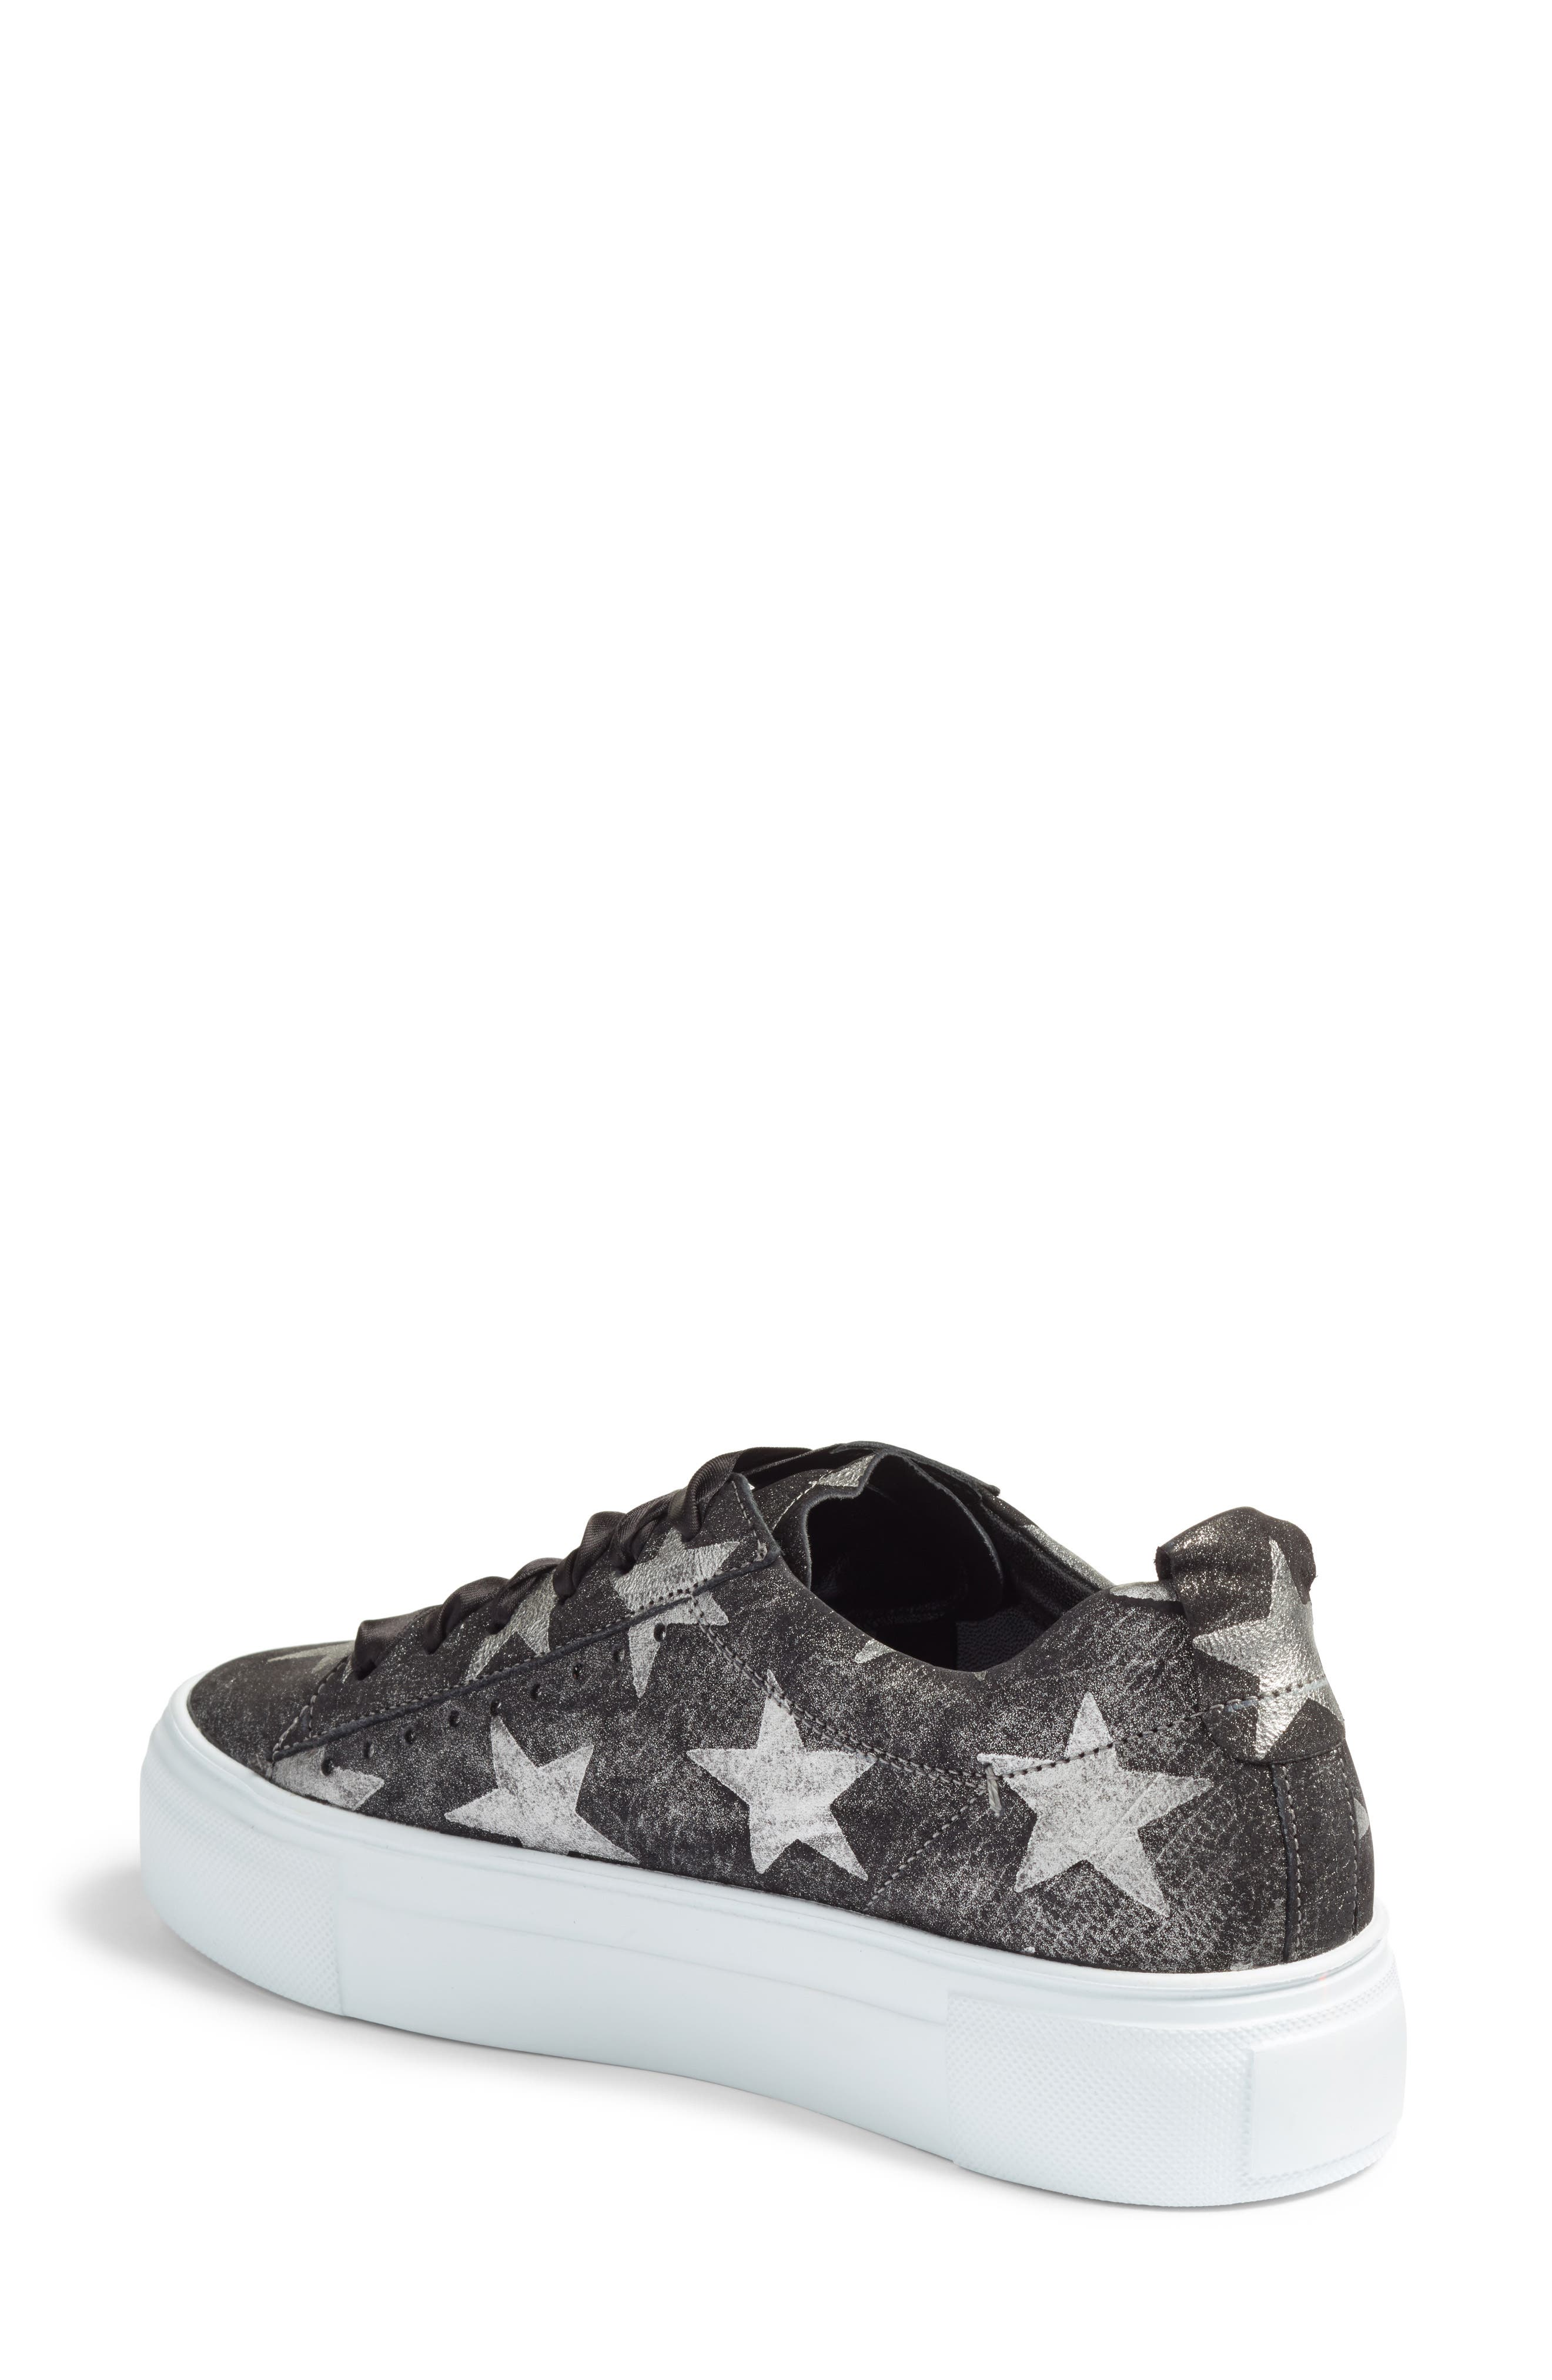 Alternate Image 2  - Kennel & Schmenger Big Star Sneaker (Women)